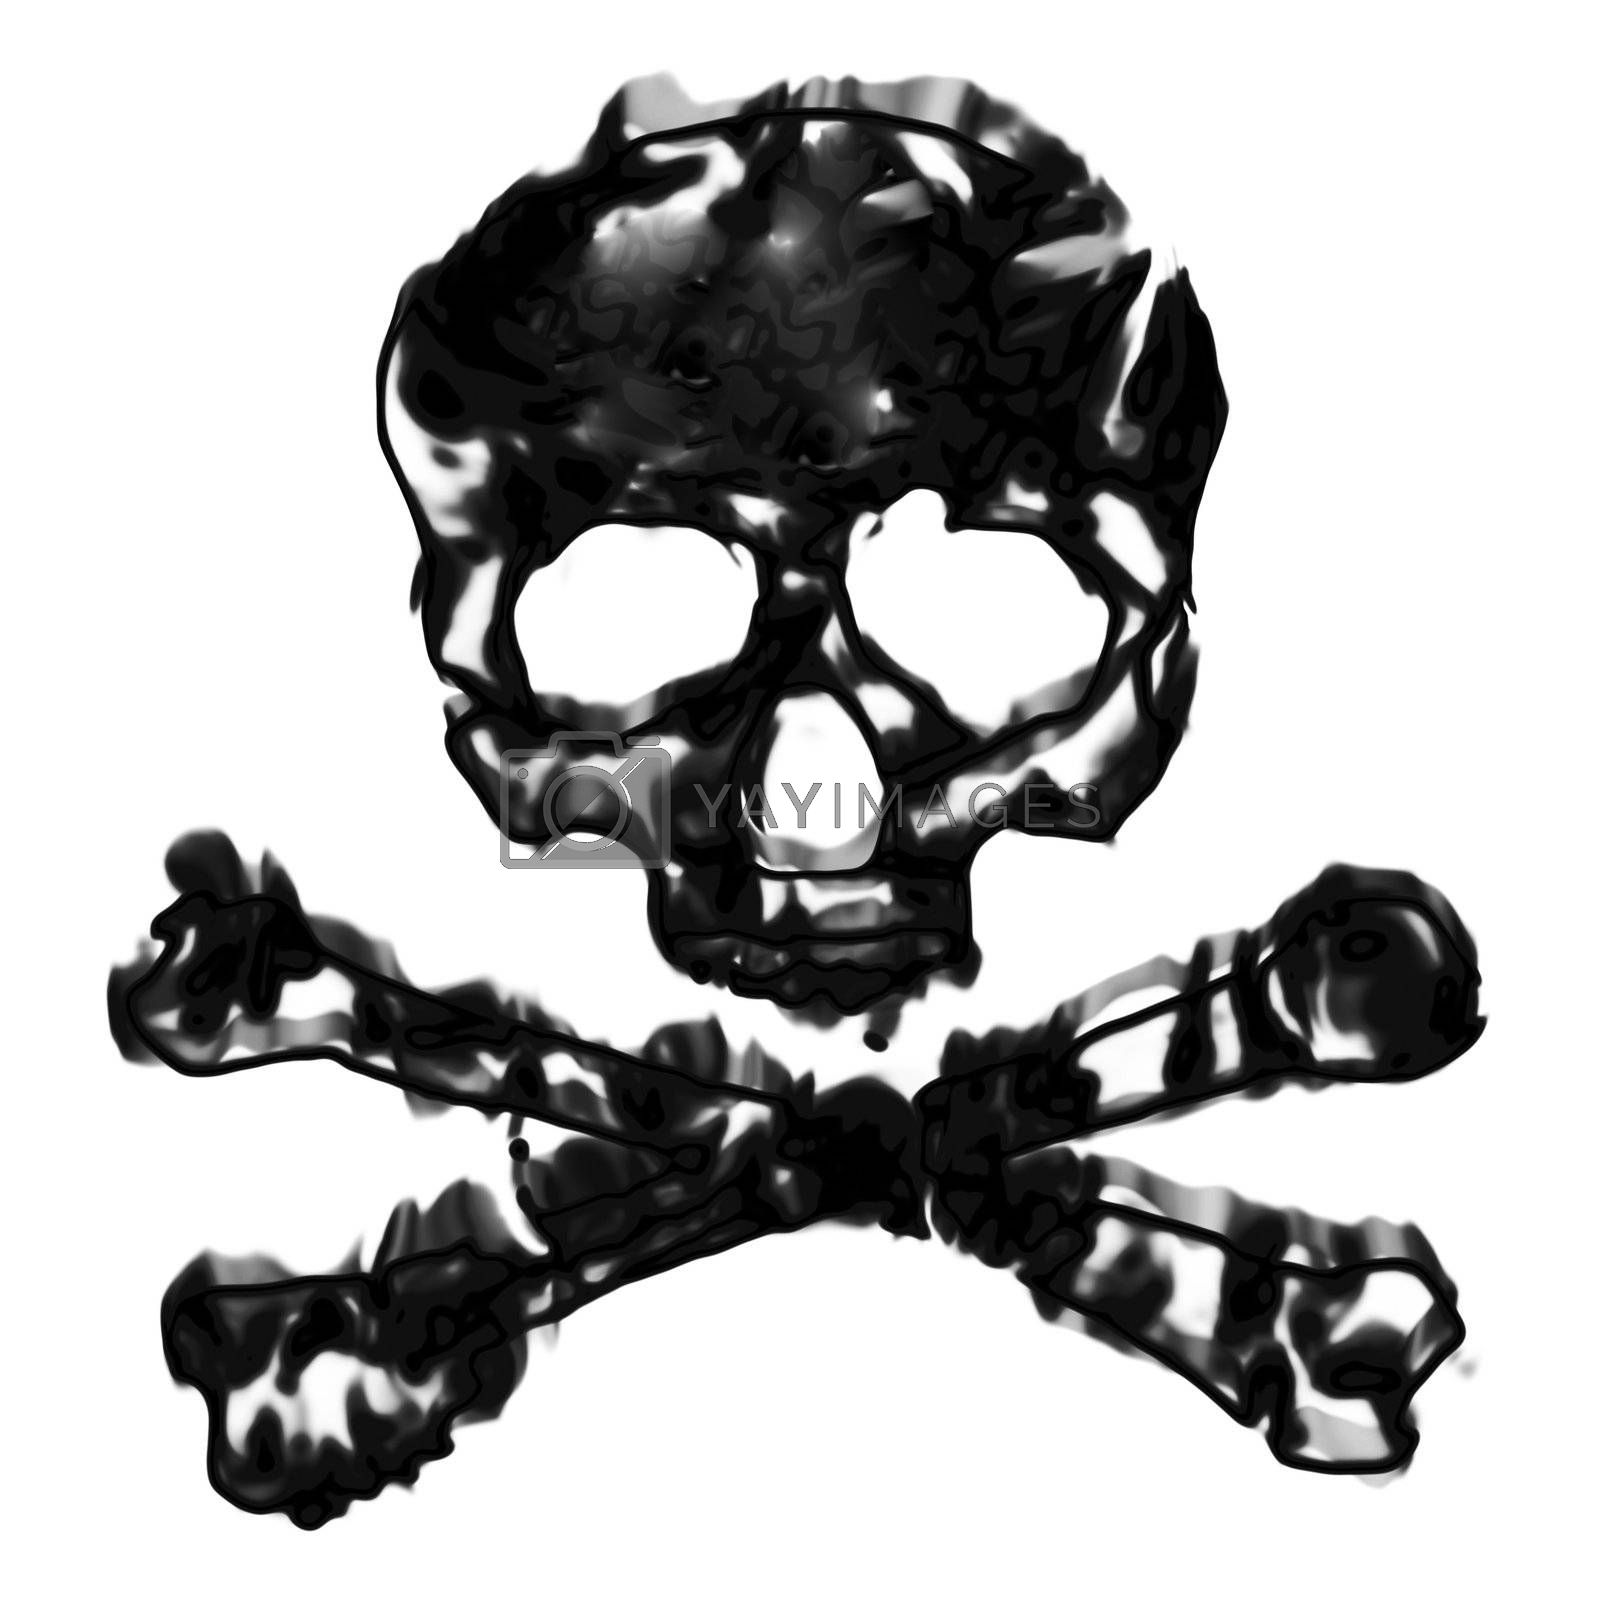 Skull and cross bones illustration isolated over a white background.